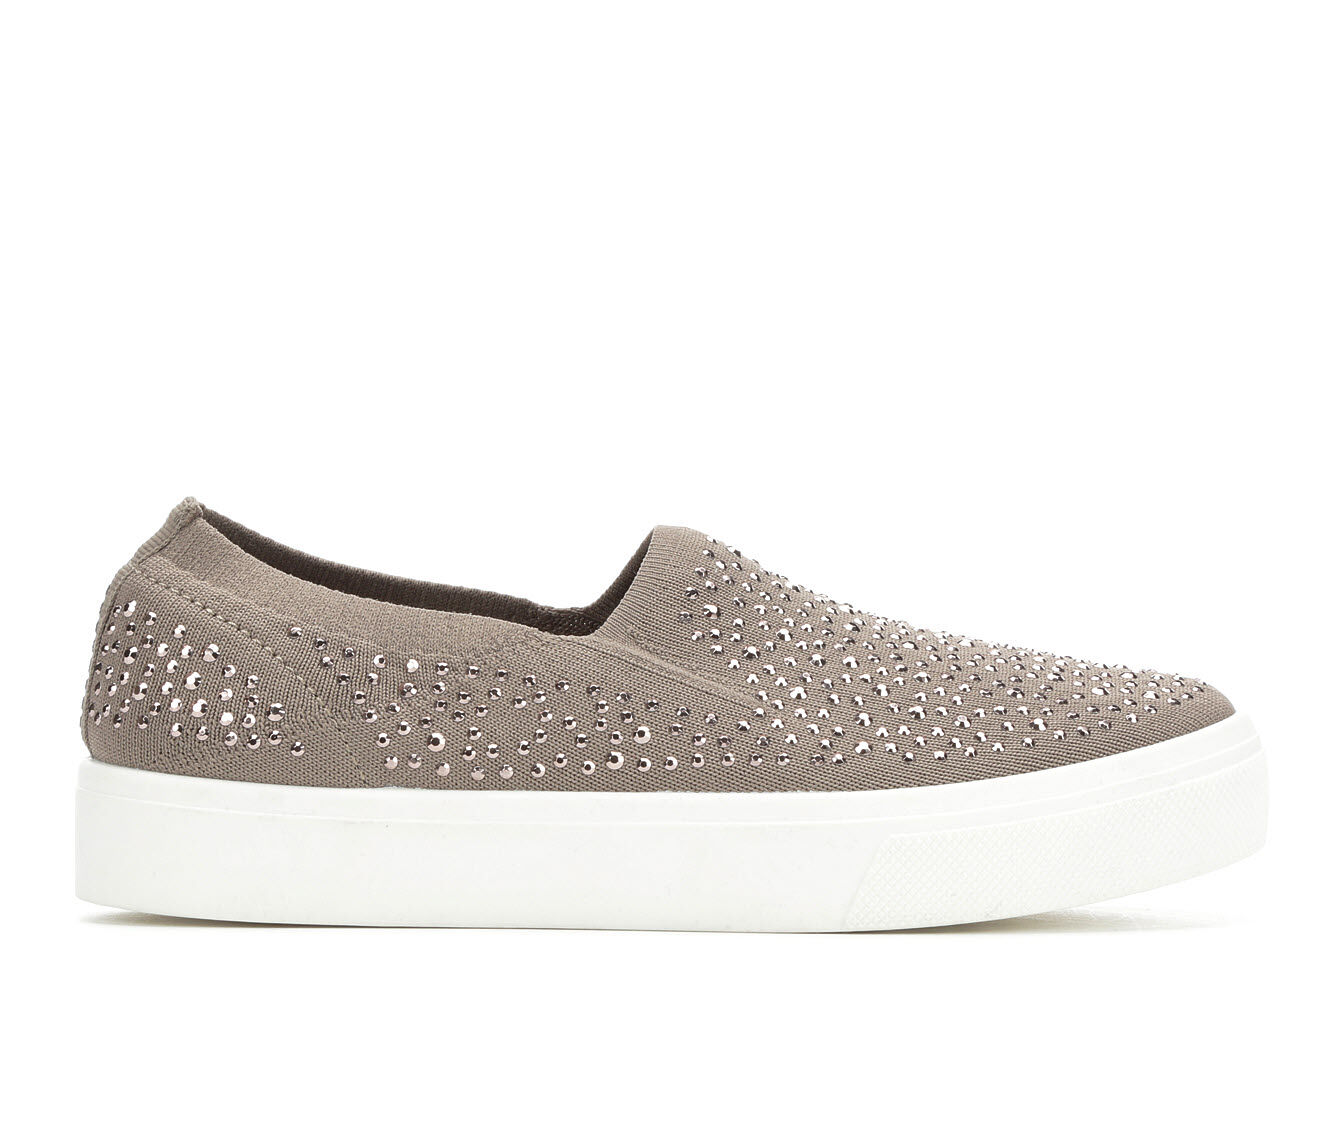 Women's Skecher Street Studded Affair Sneakers Taupe